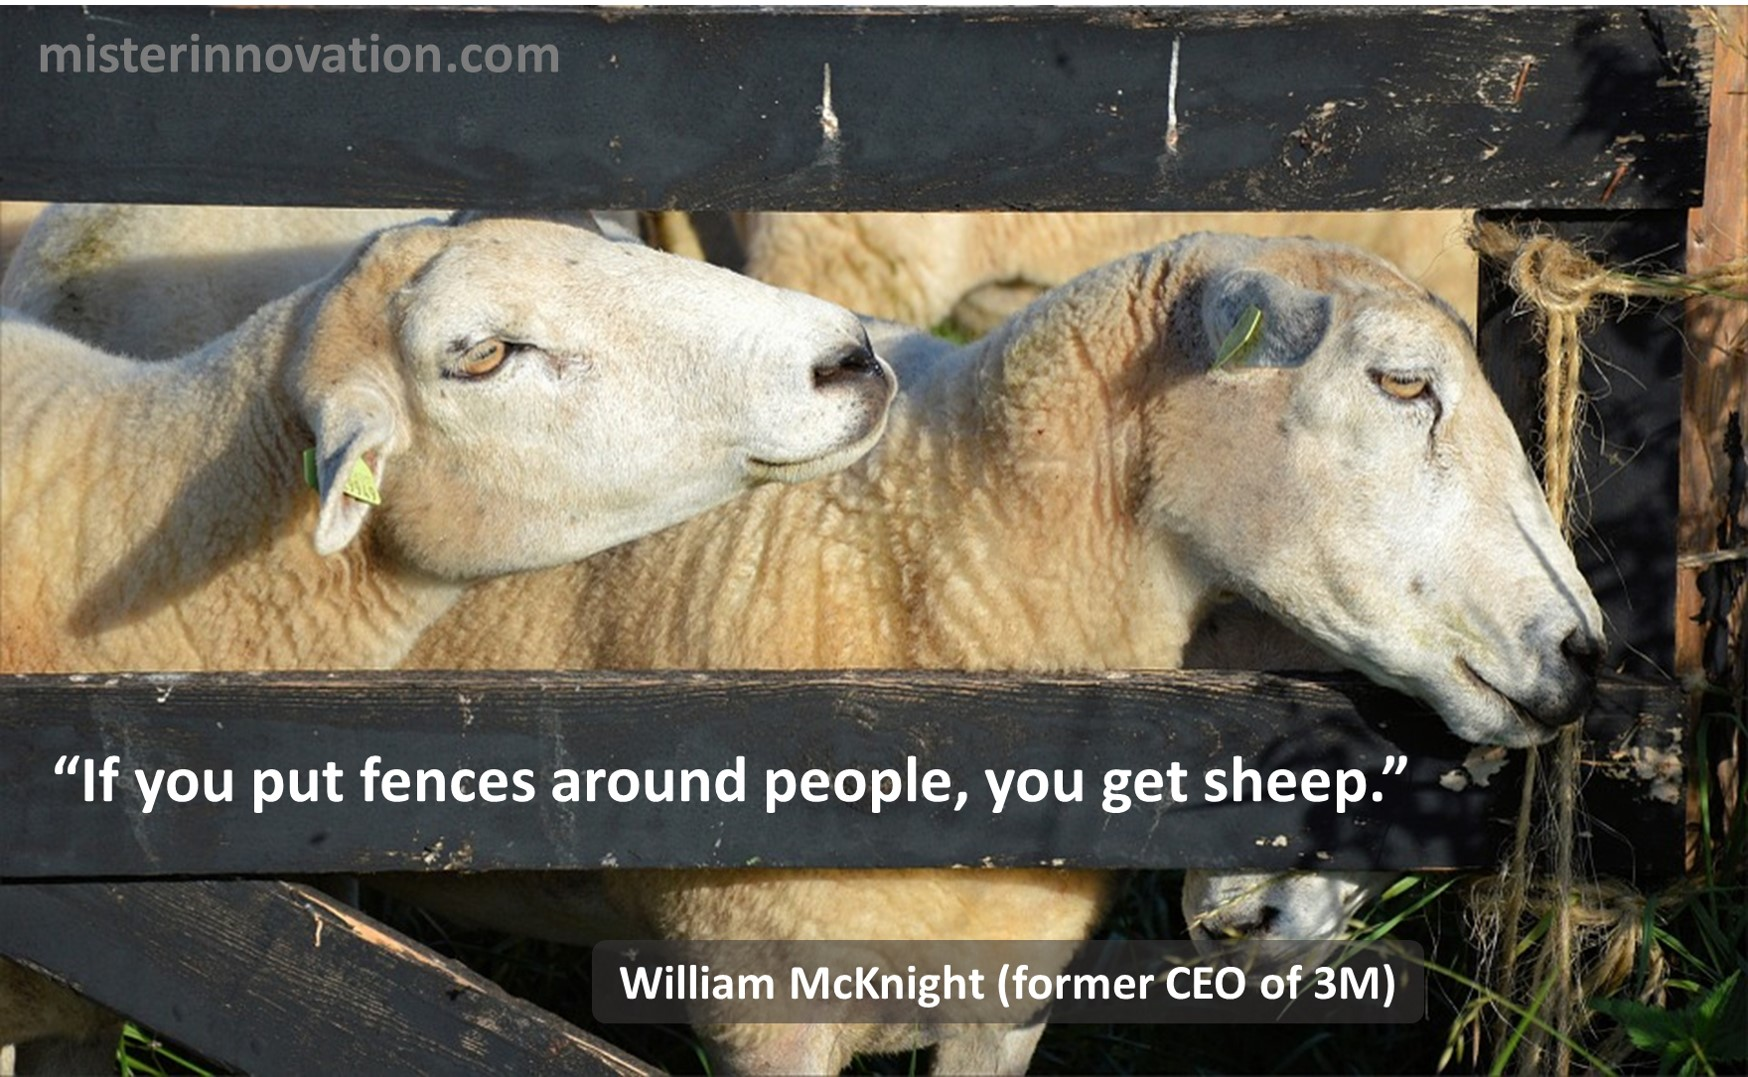 William McKnight of 3M Quote on Fences and Sheep